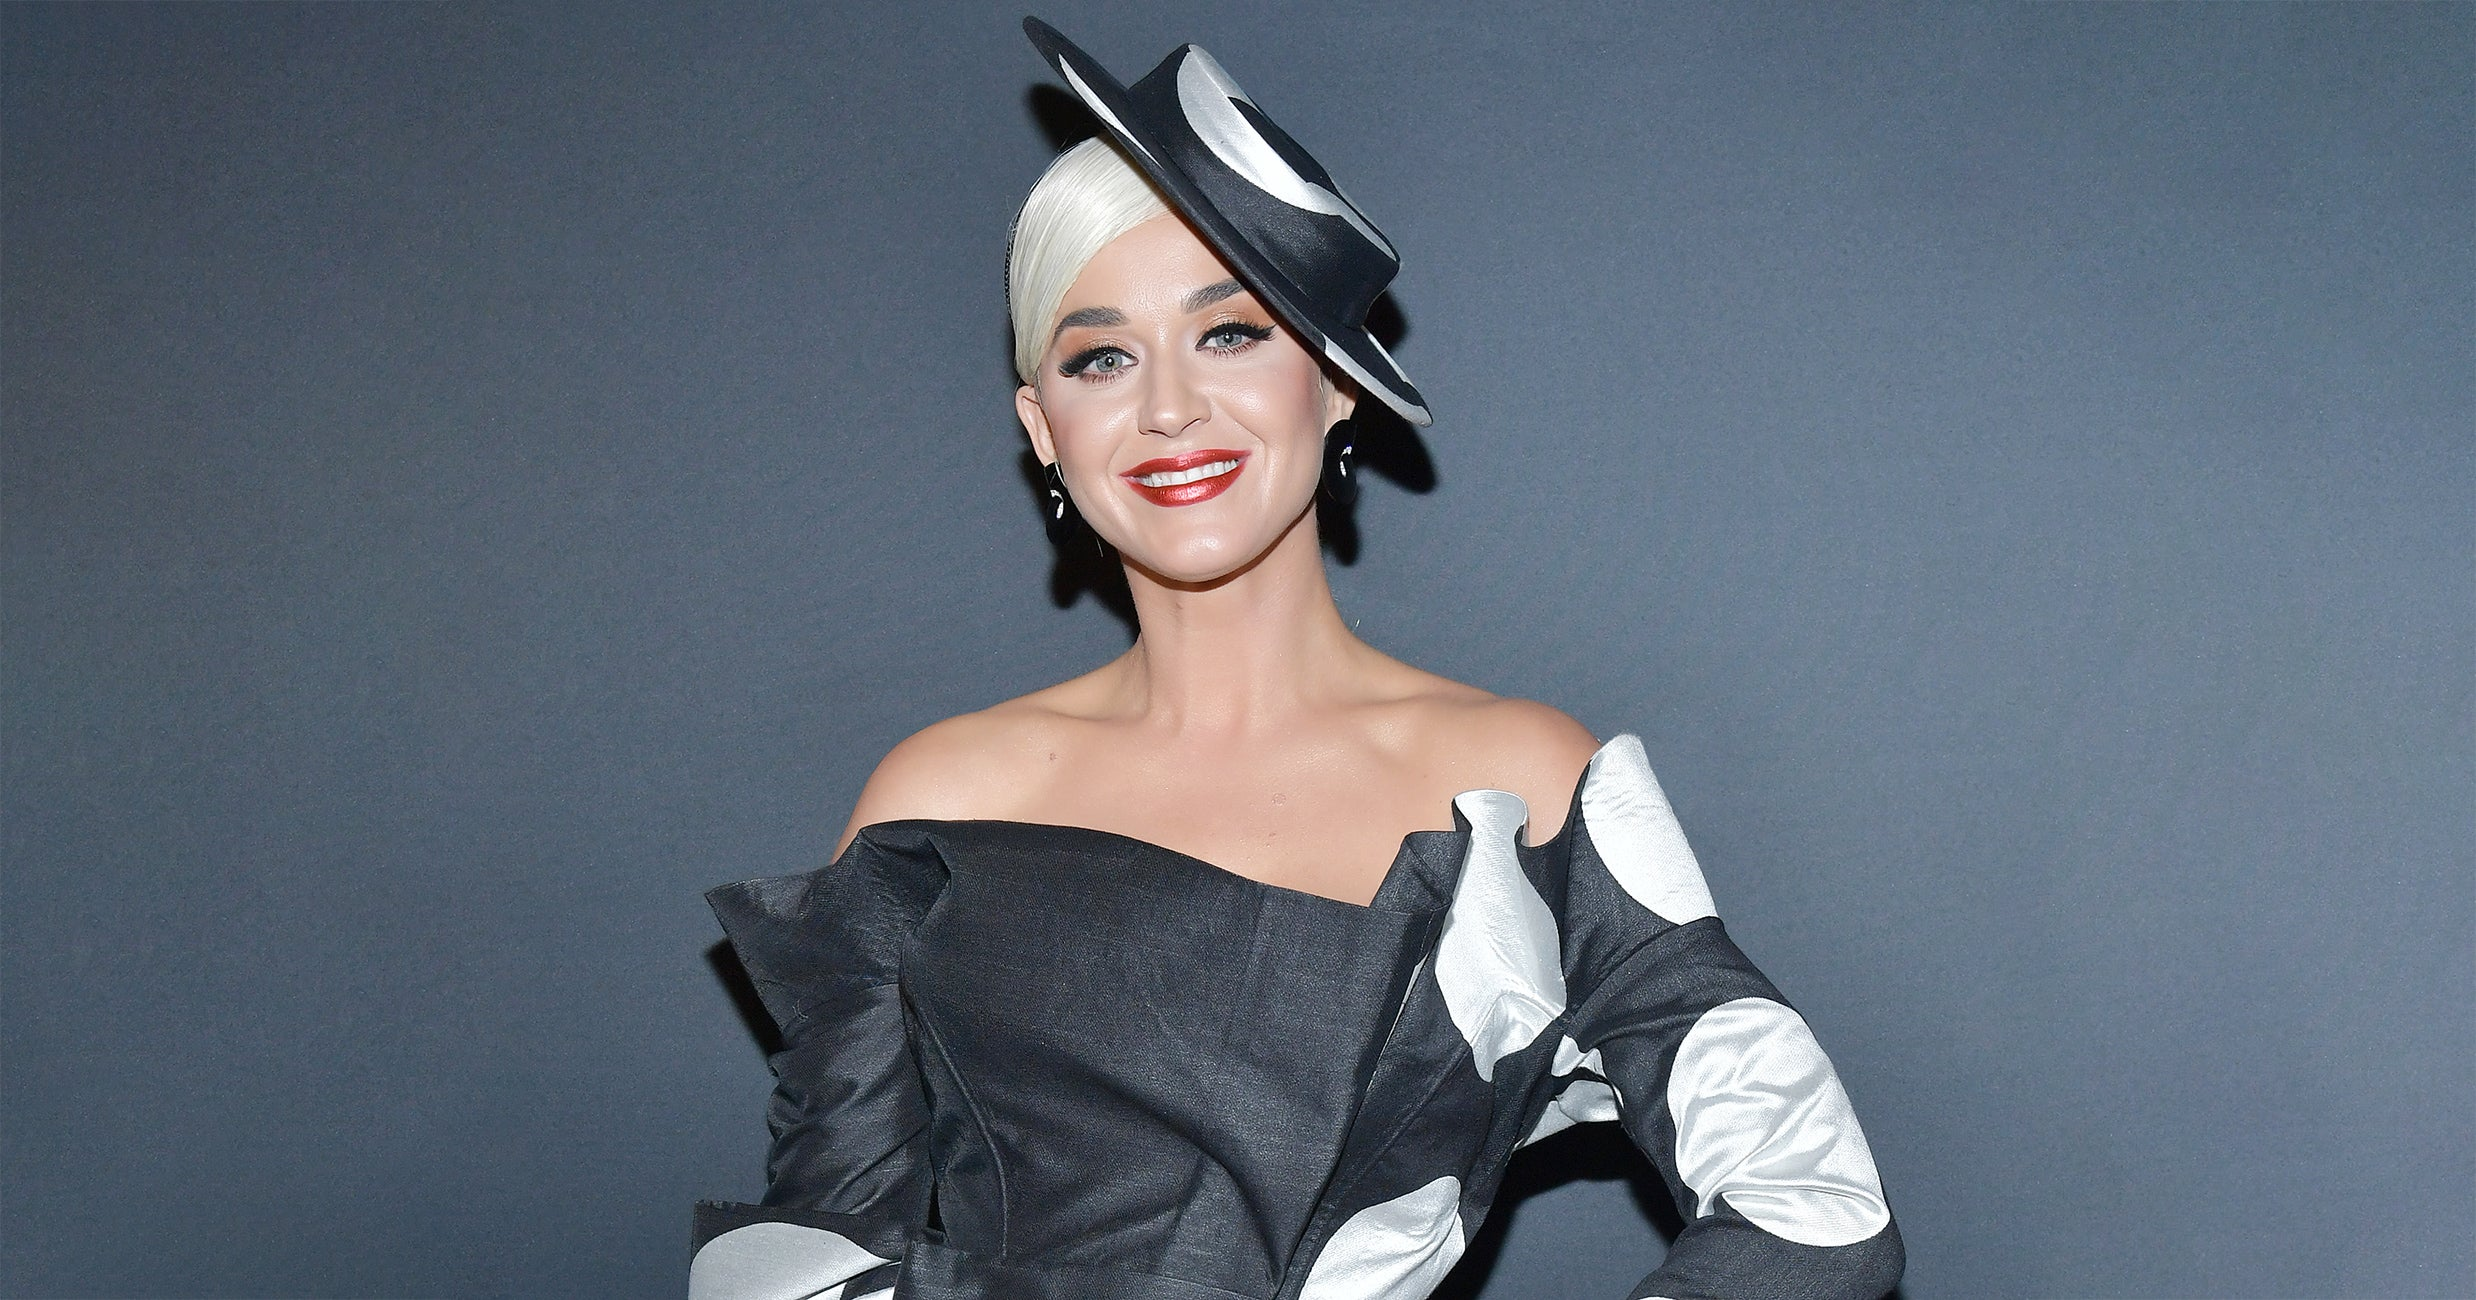 Katy Perry Looks So Different After Her Latest Hair Makeover